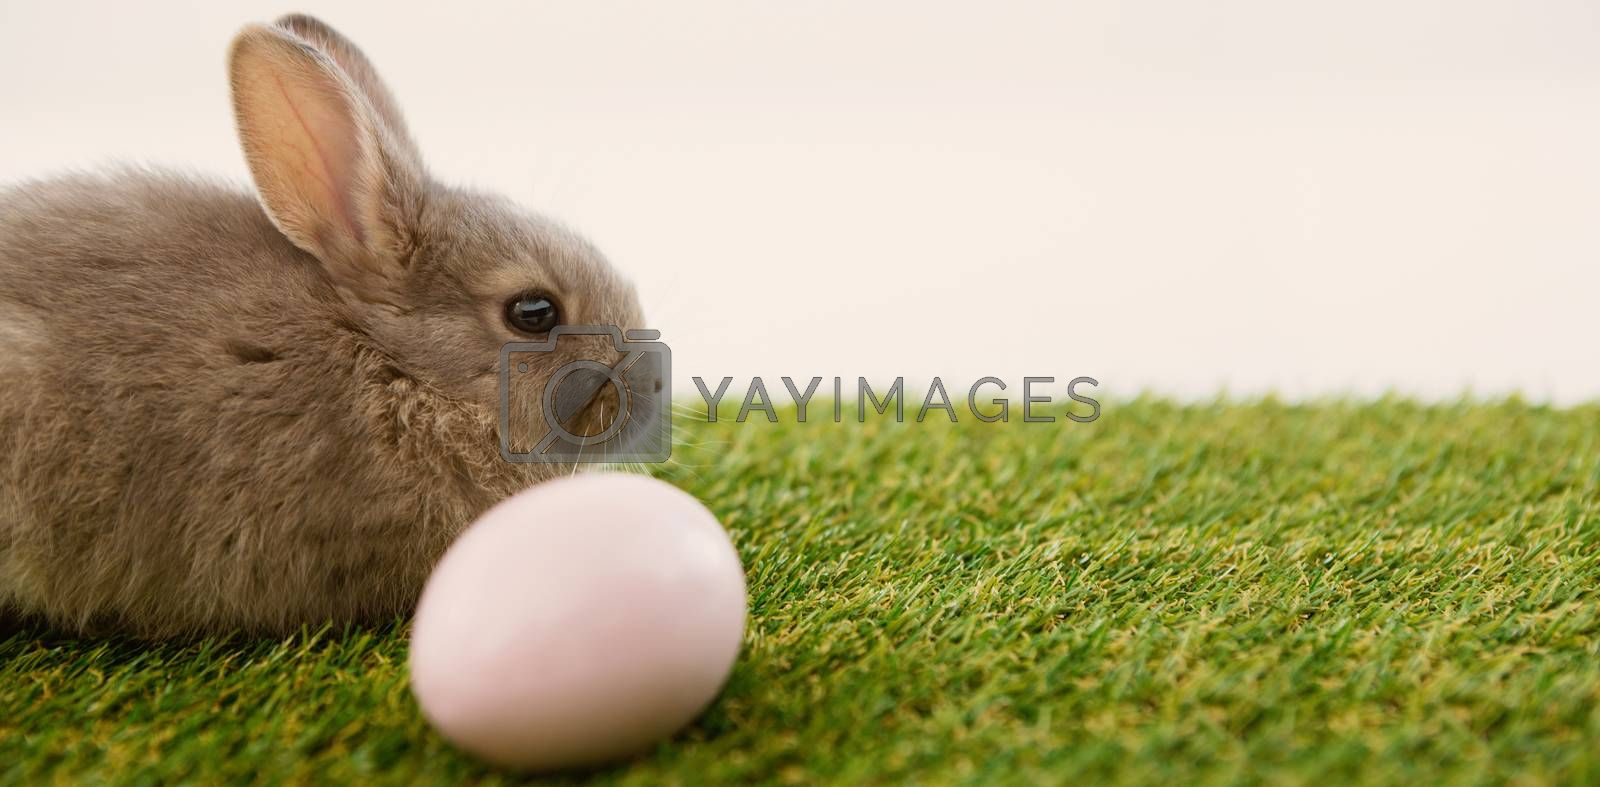 Easter egg and Easter bunny in grass on white background